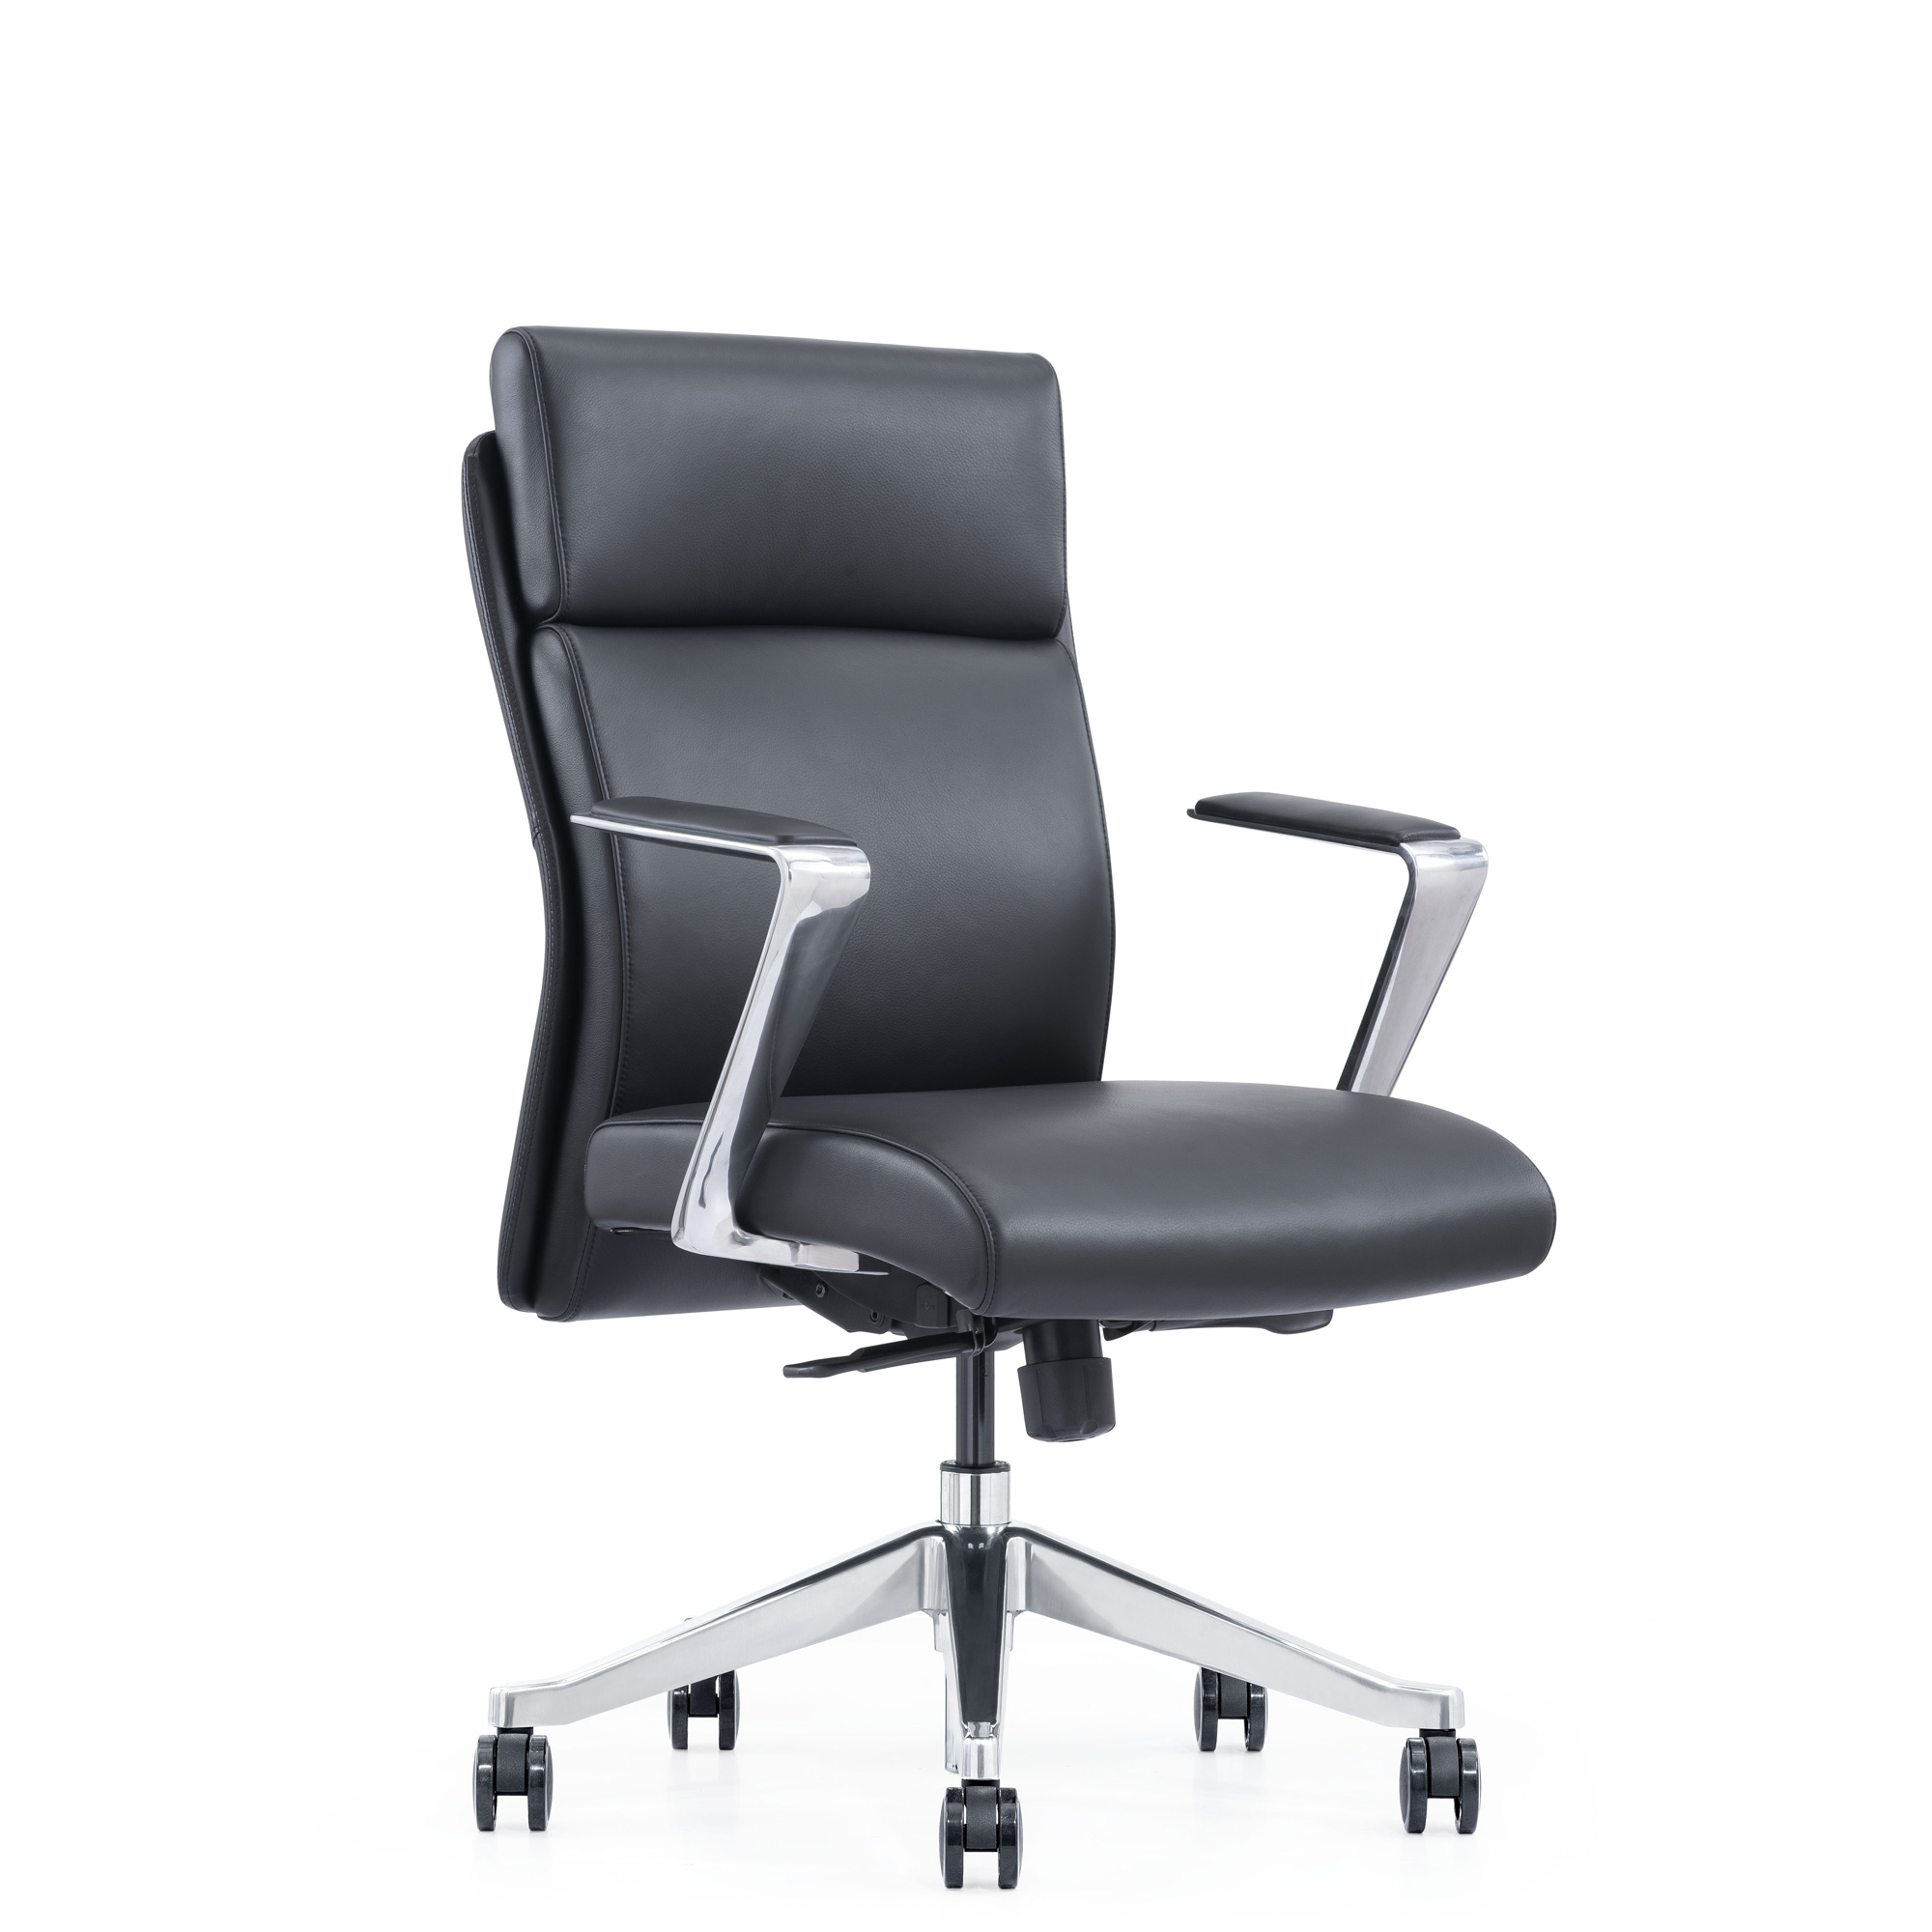 Black Leather Mid-Back Manager Chair